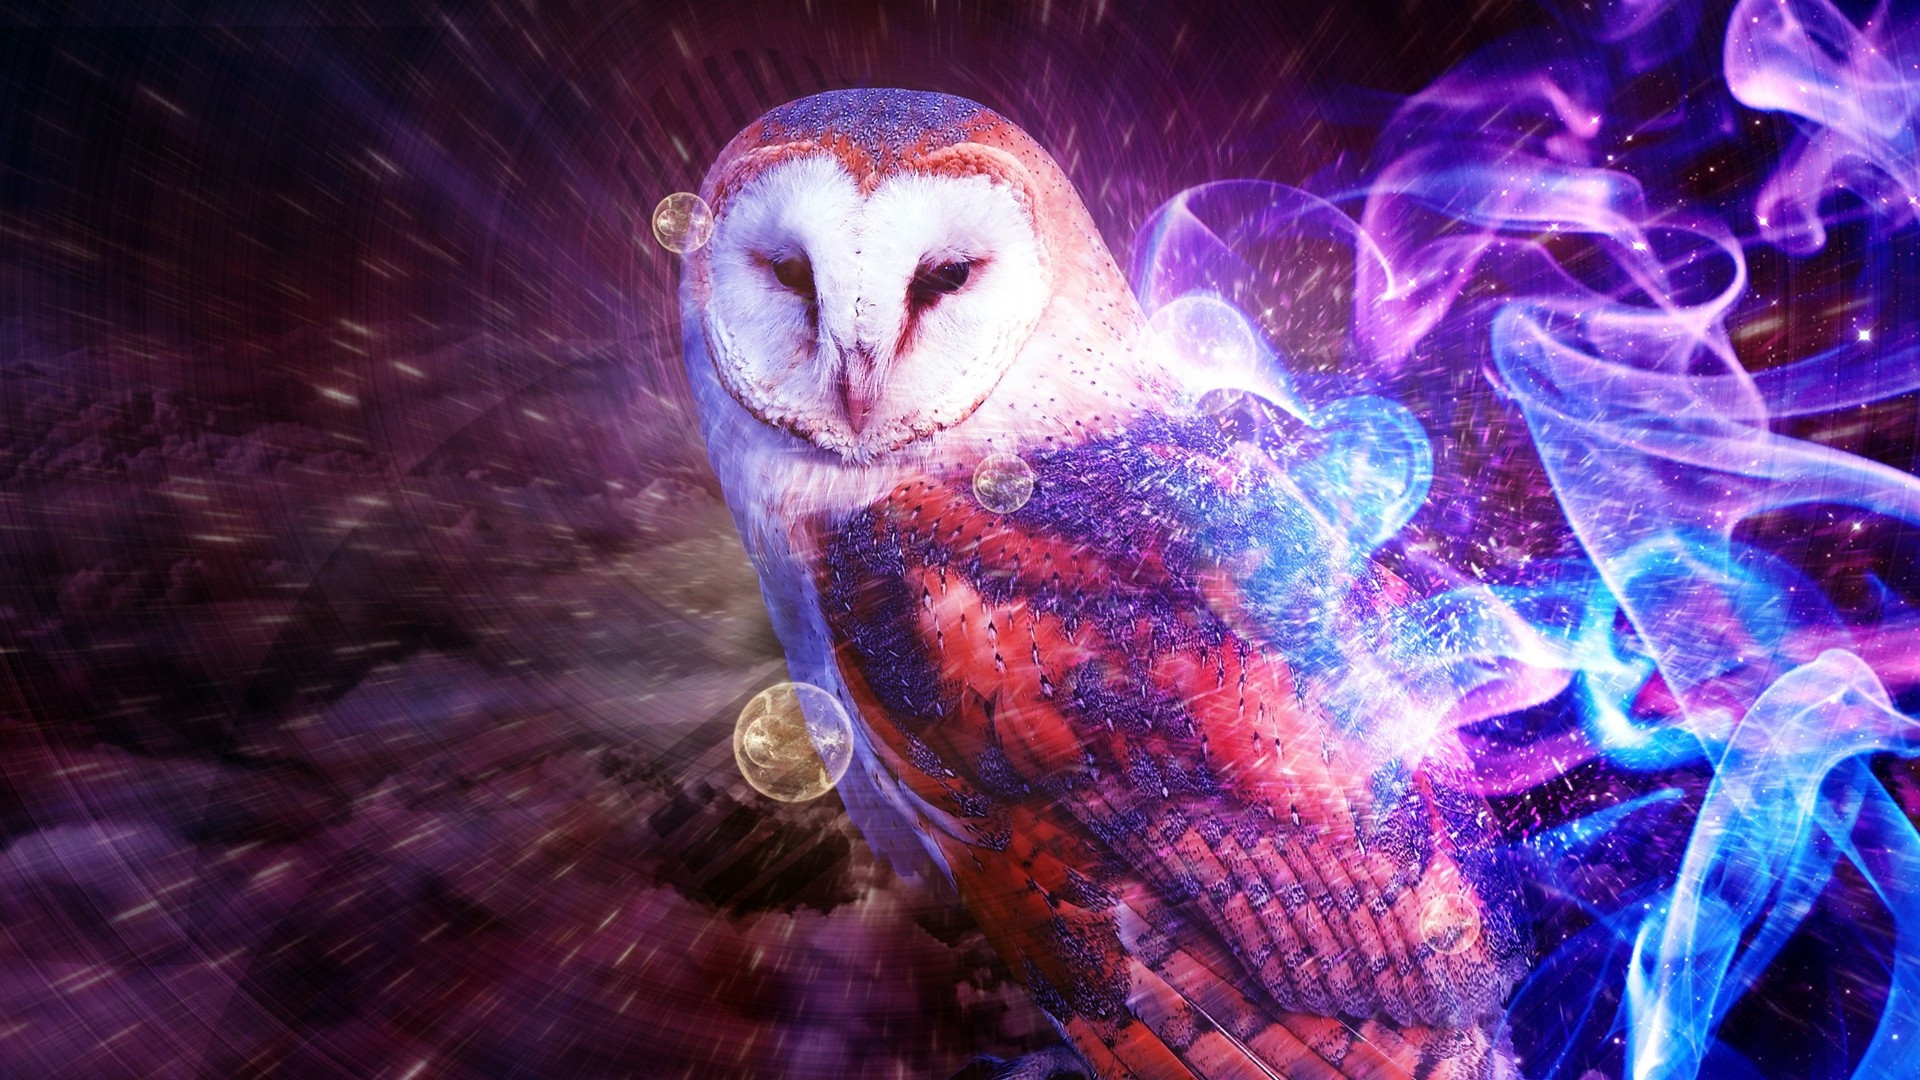 Some trippy owl thing.